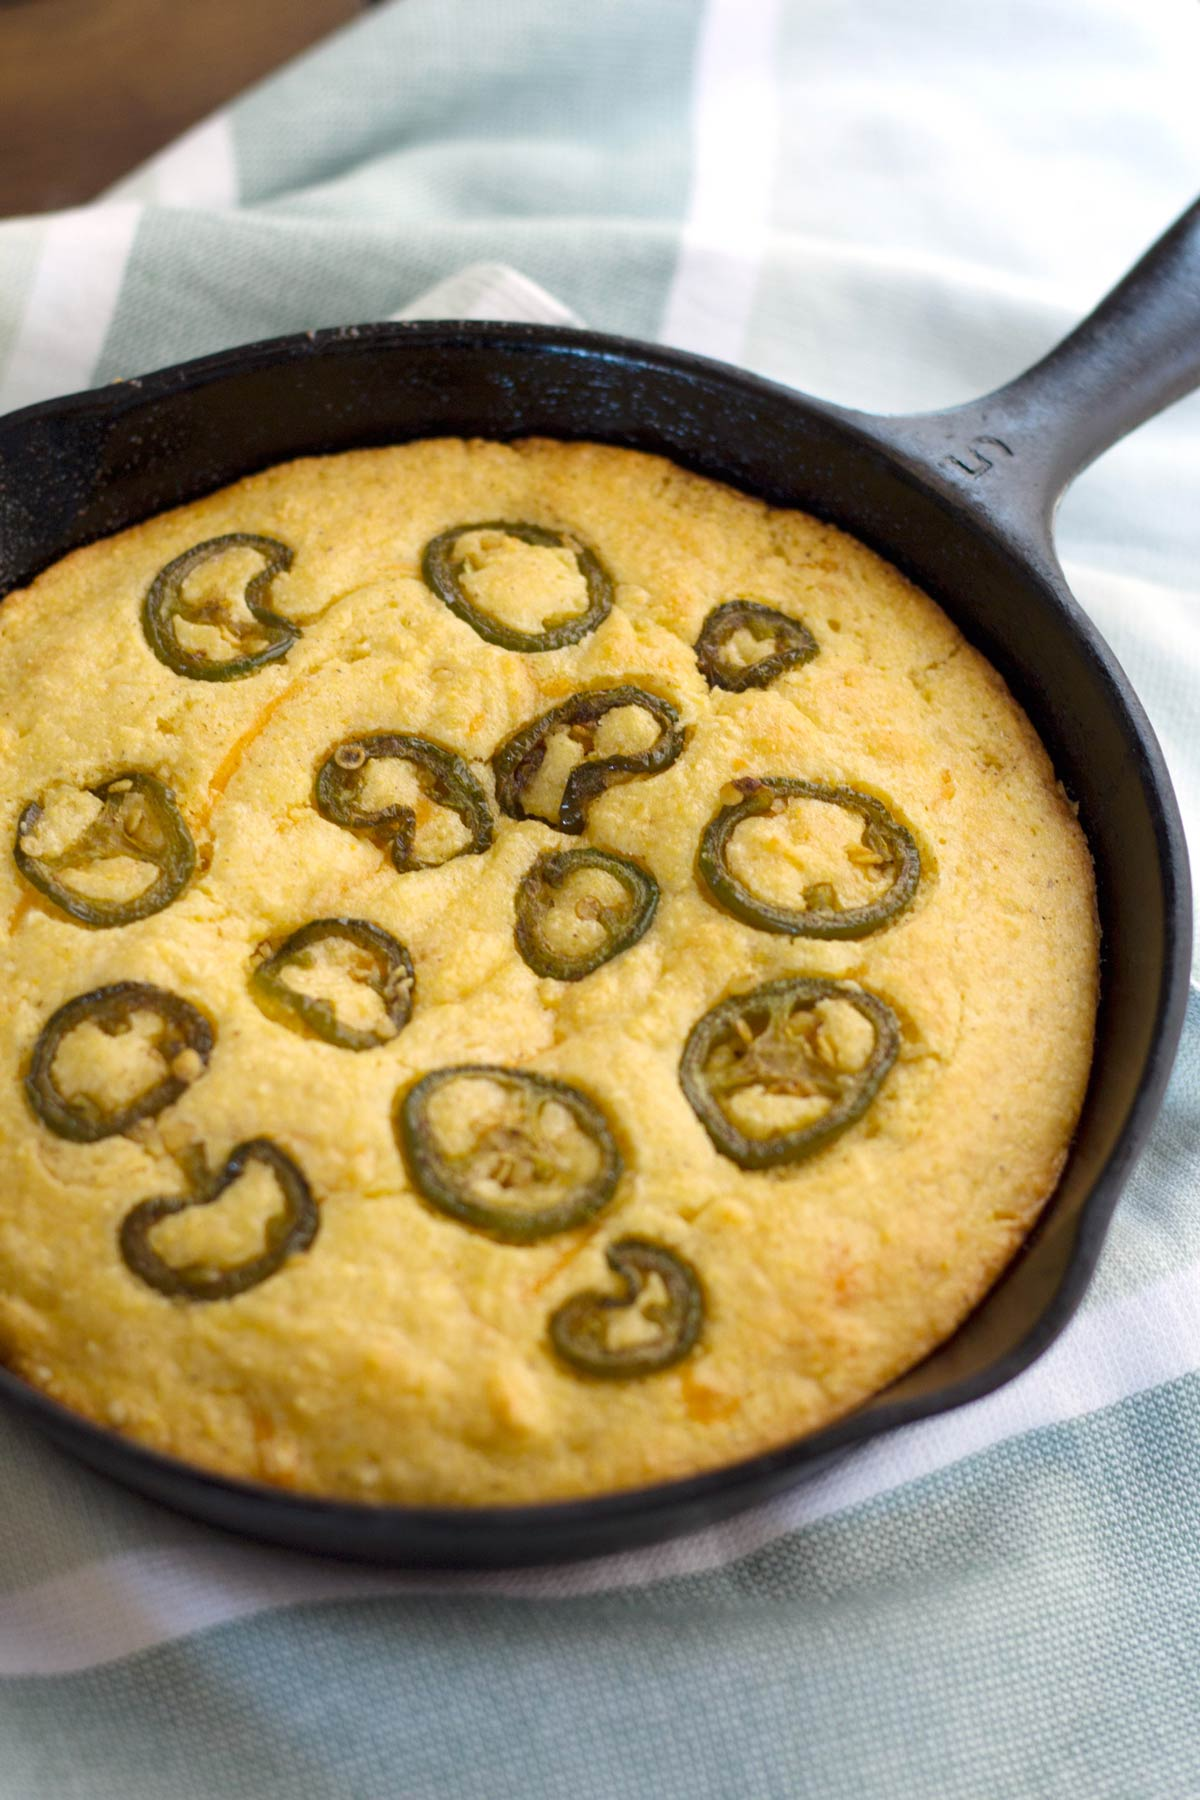 Cornbread after baking with jalapenos arranged on the top.